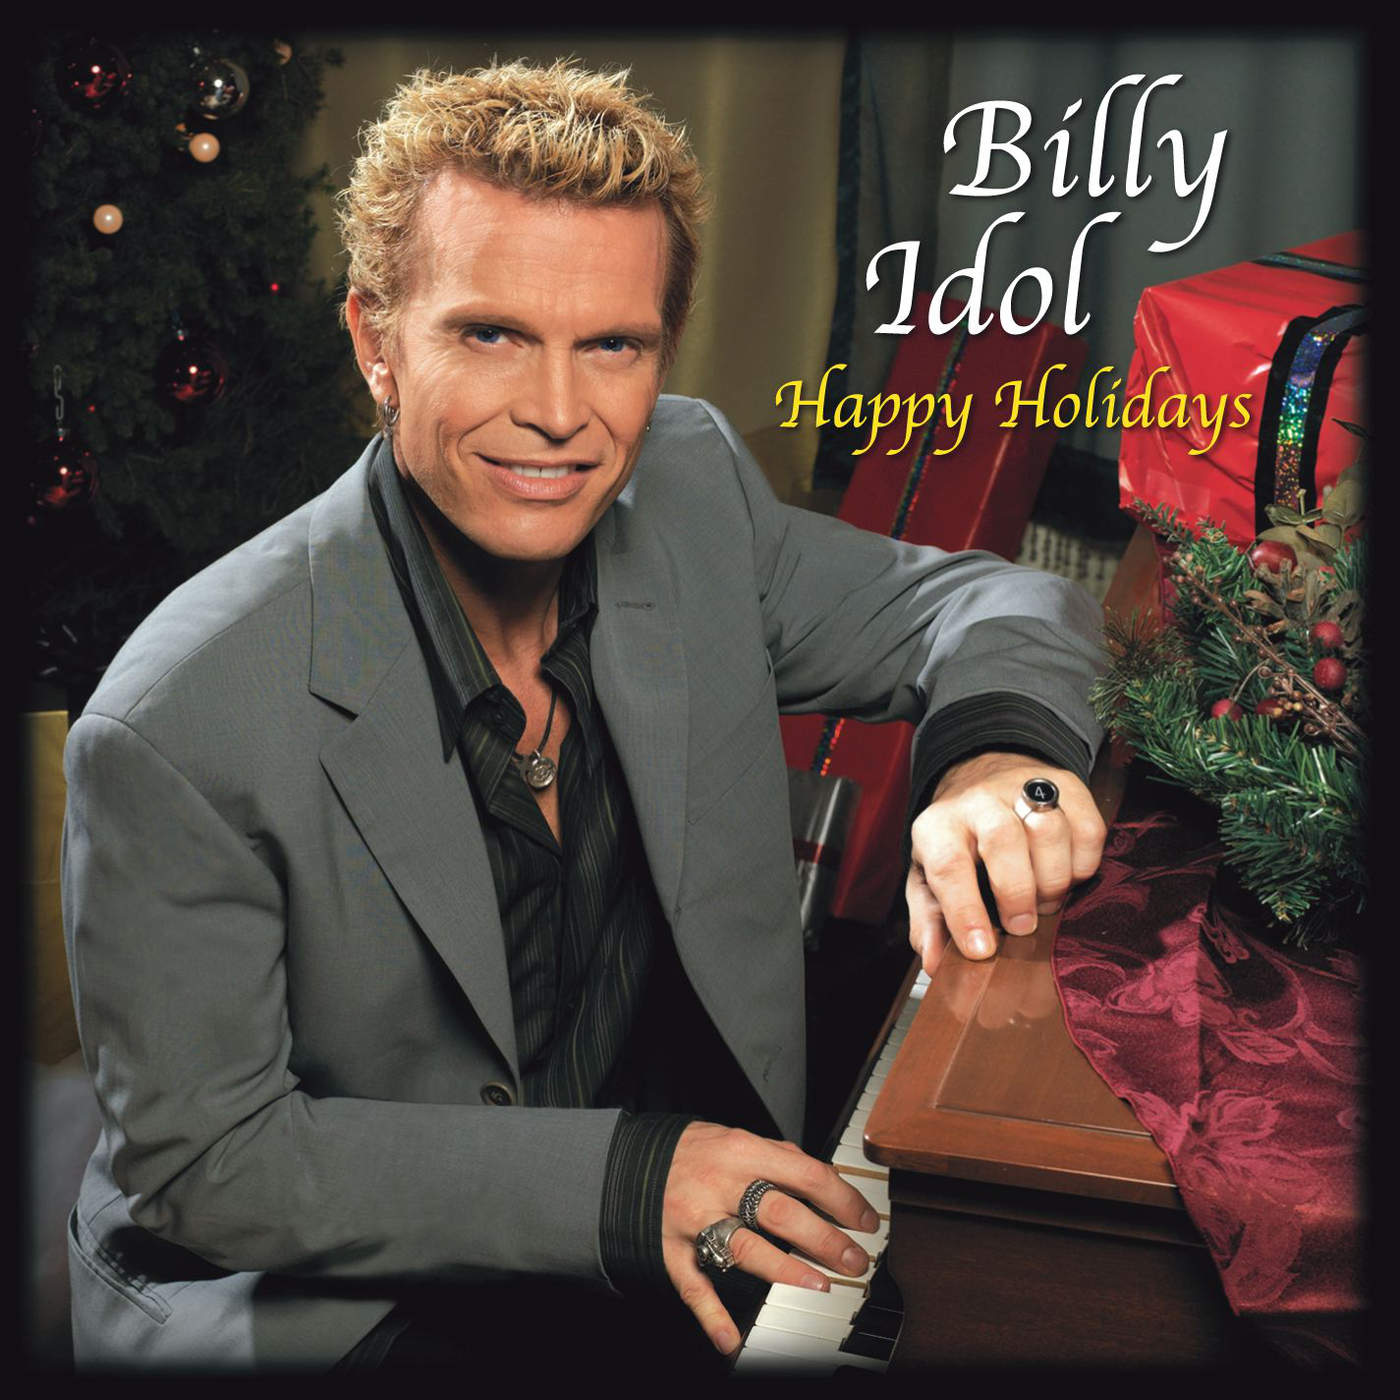 Happy Holidays by Billy Idol